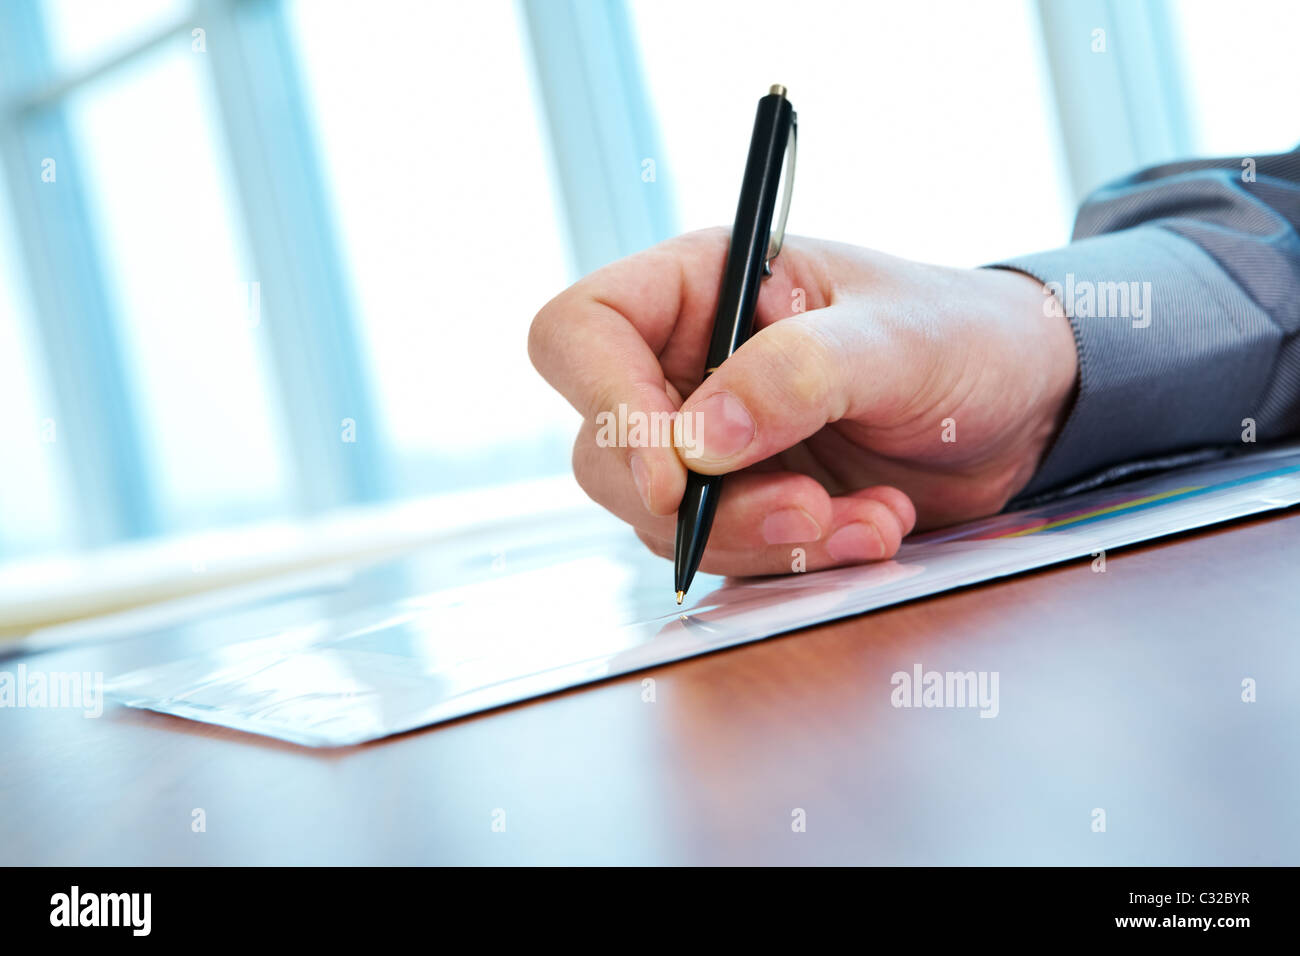 Close-up of male hand with pen making notes during conference - Stock Image